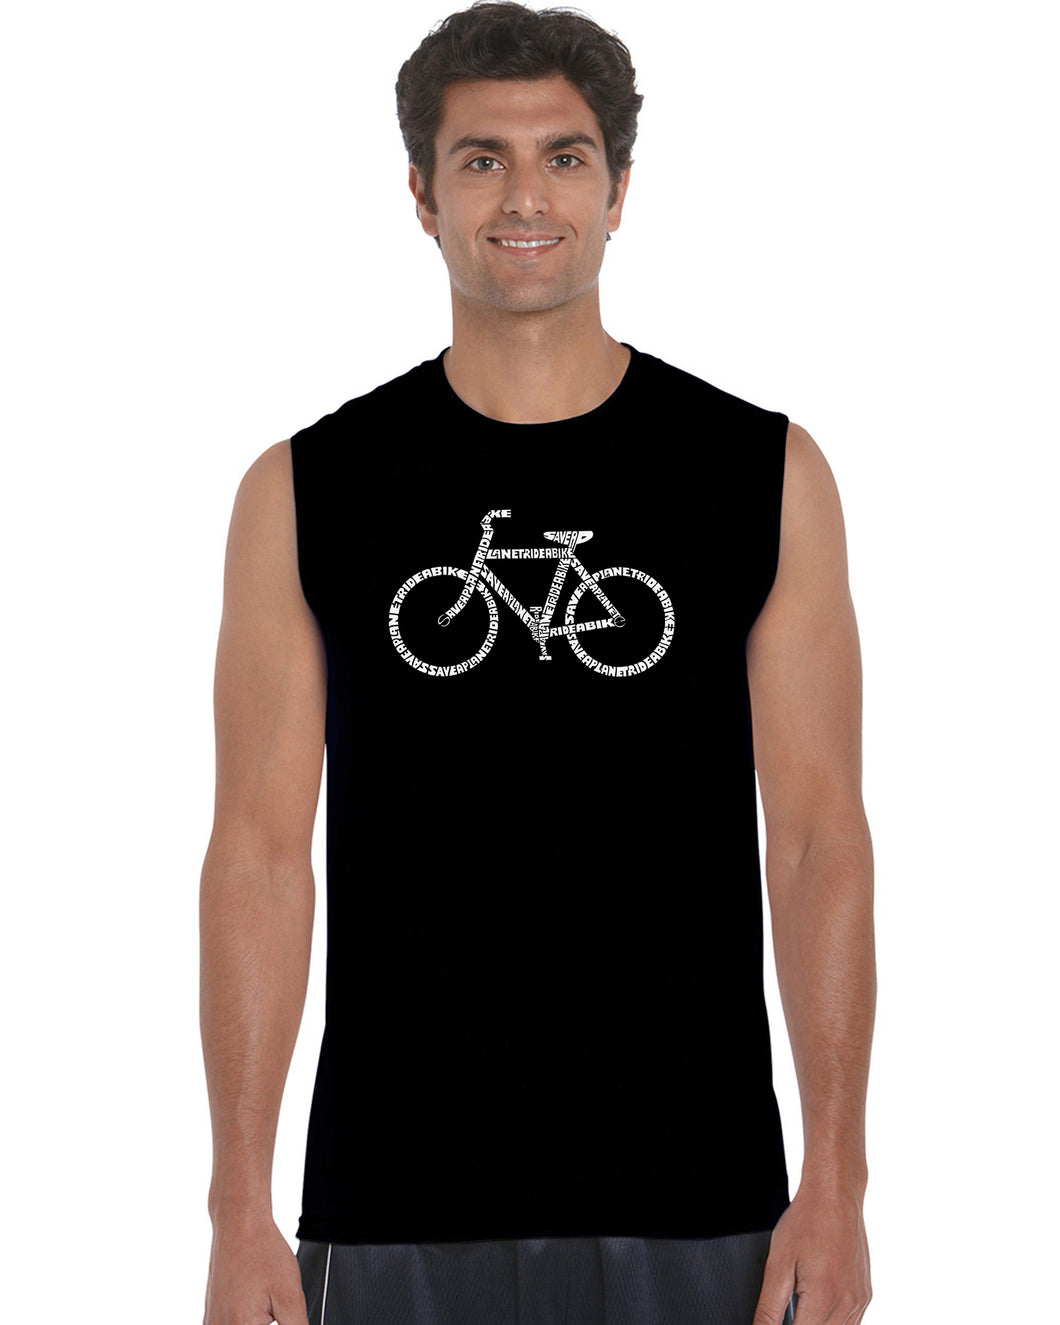 LA Pop Art Men's Word Art Sleeveless T-shirt - SAVE A PLANET, RIDE A BIKE